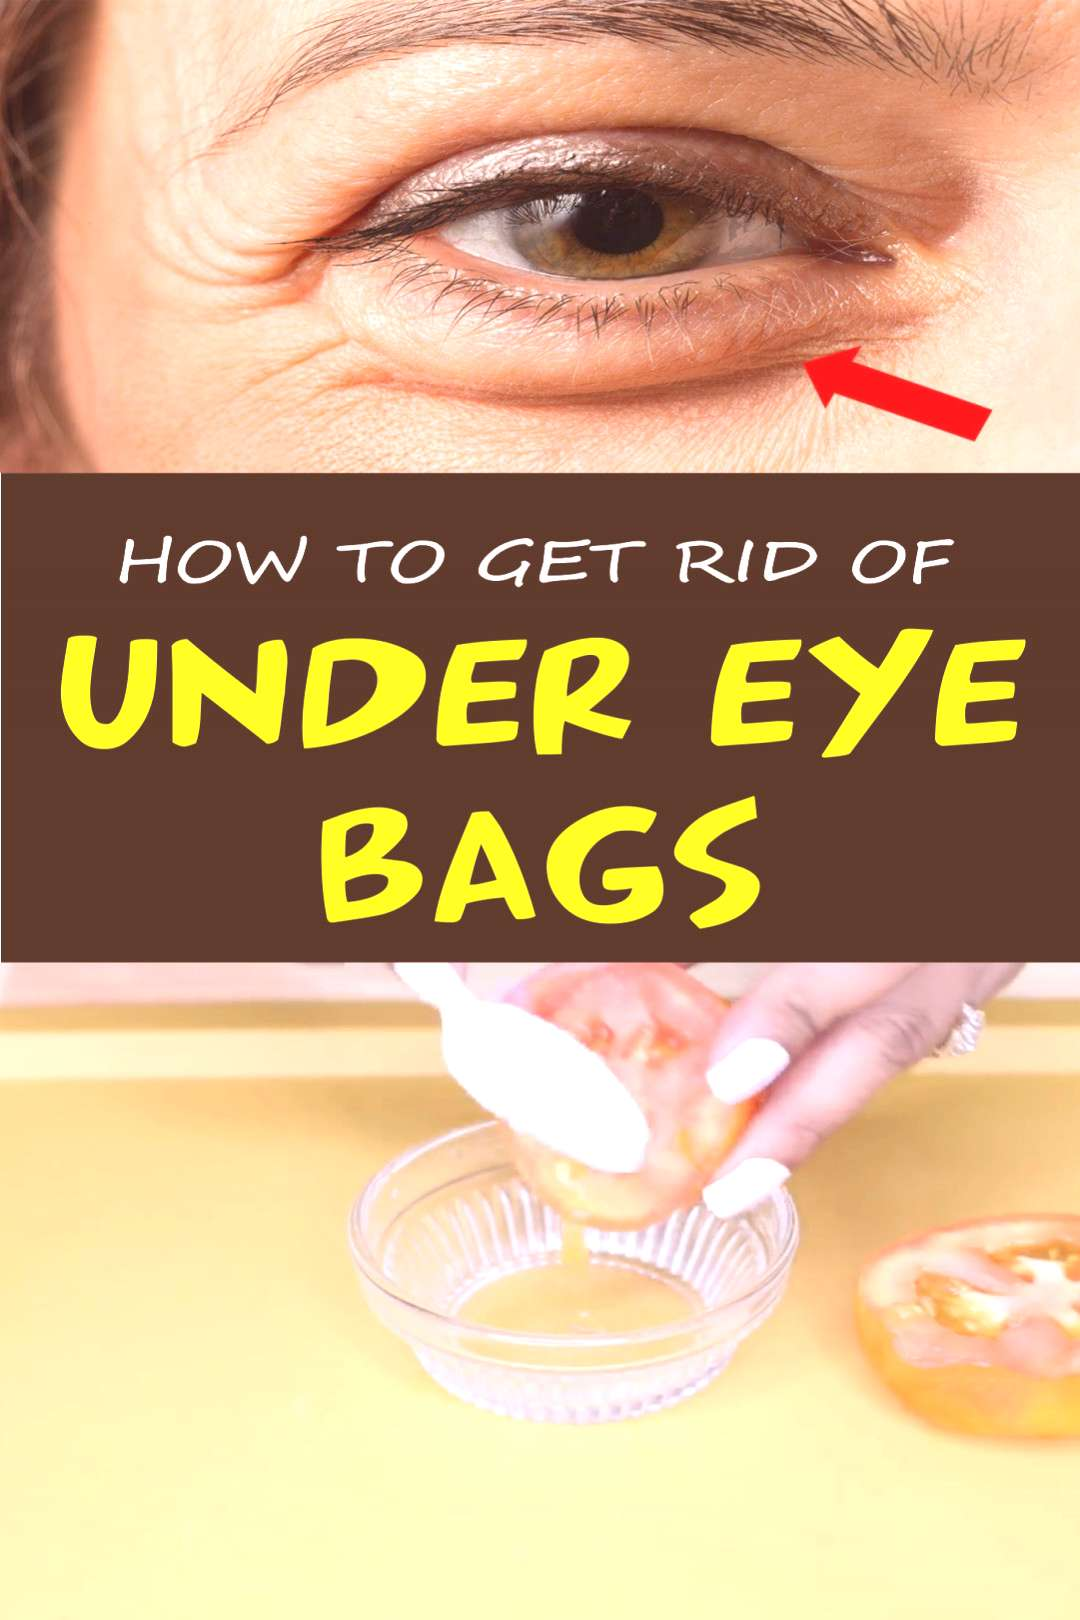 How to Get Rid of Dark Circles Under Your Eyes: Top 9 Home Remedies that Work How to Get Rid of Dar